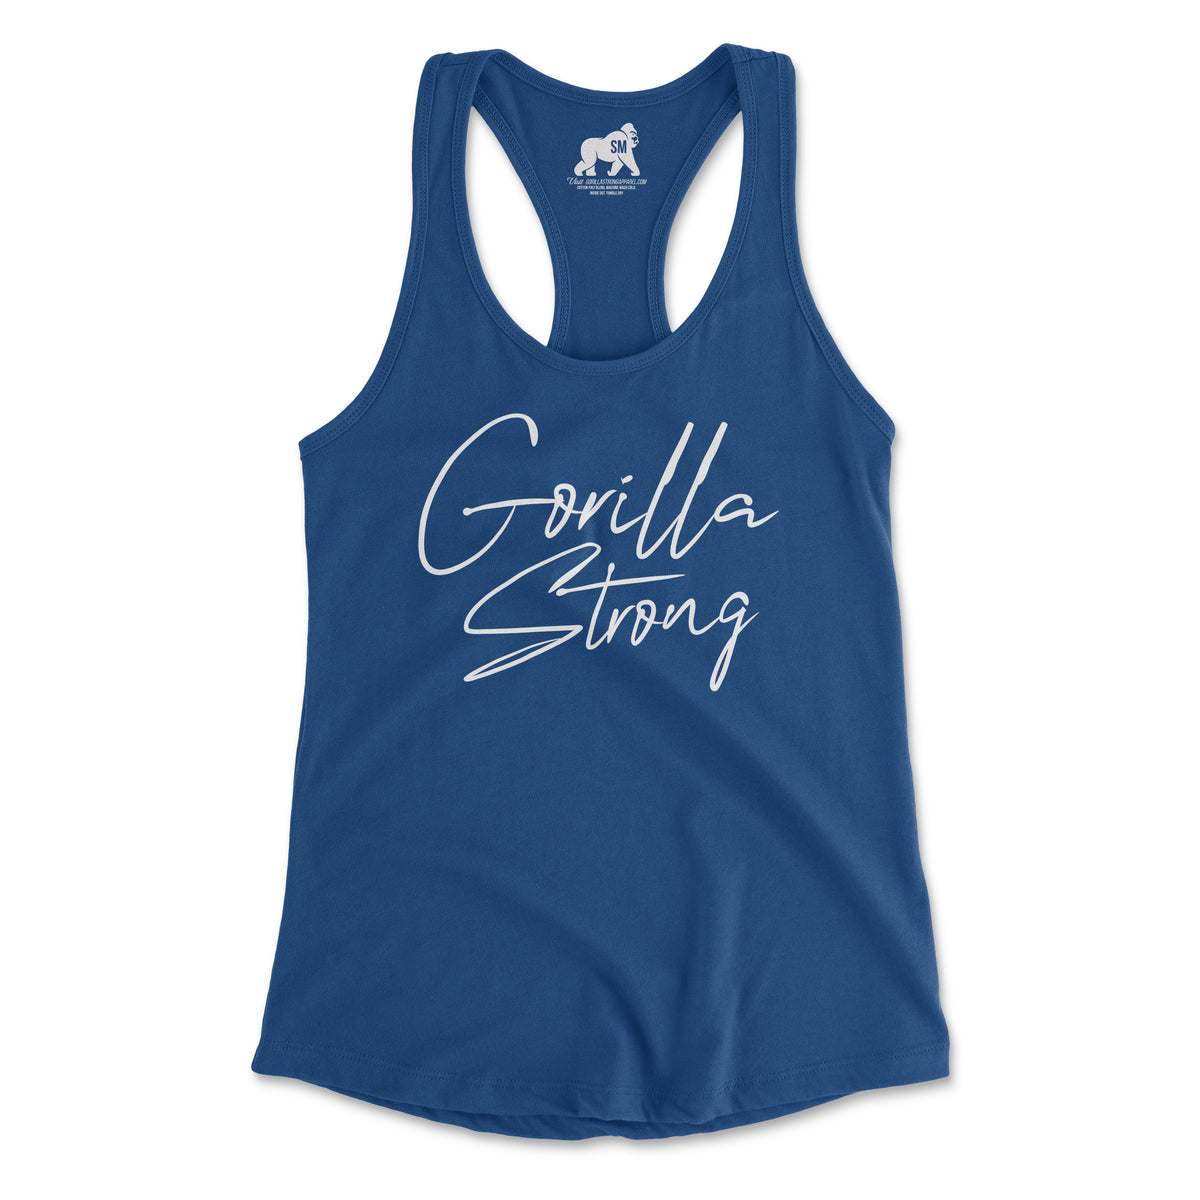 Womens Strong Tanks